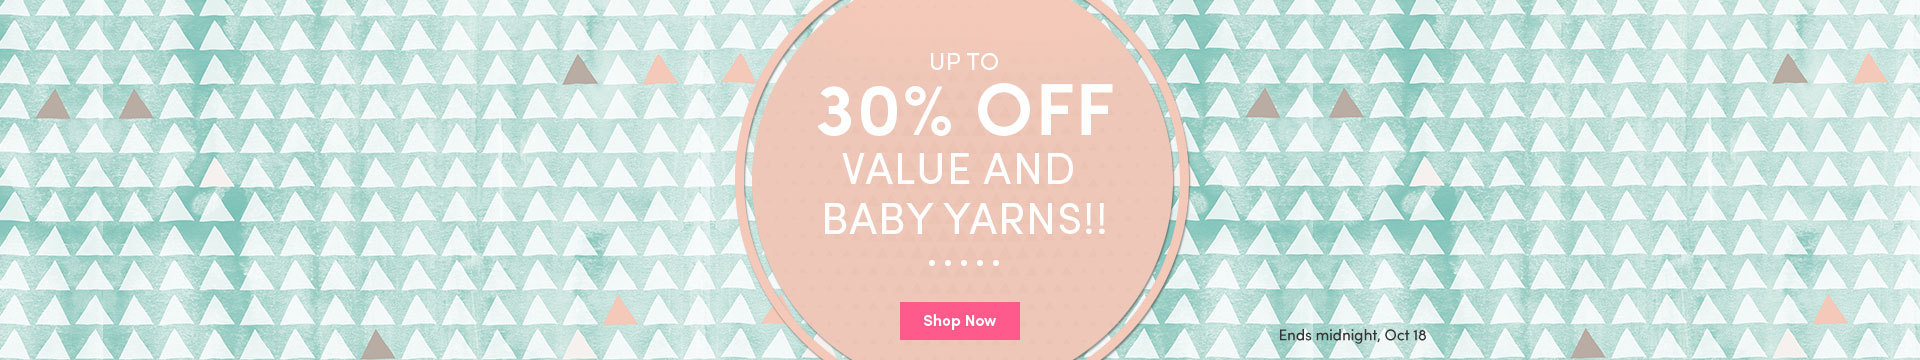 LC Marketing 30% off baby & value yarns NA Oct 17